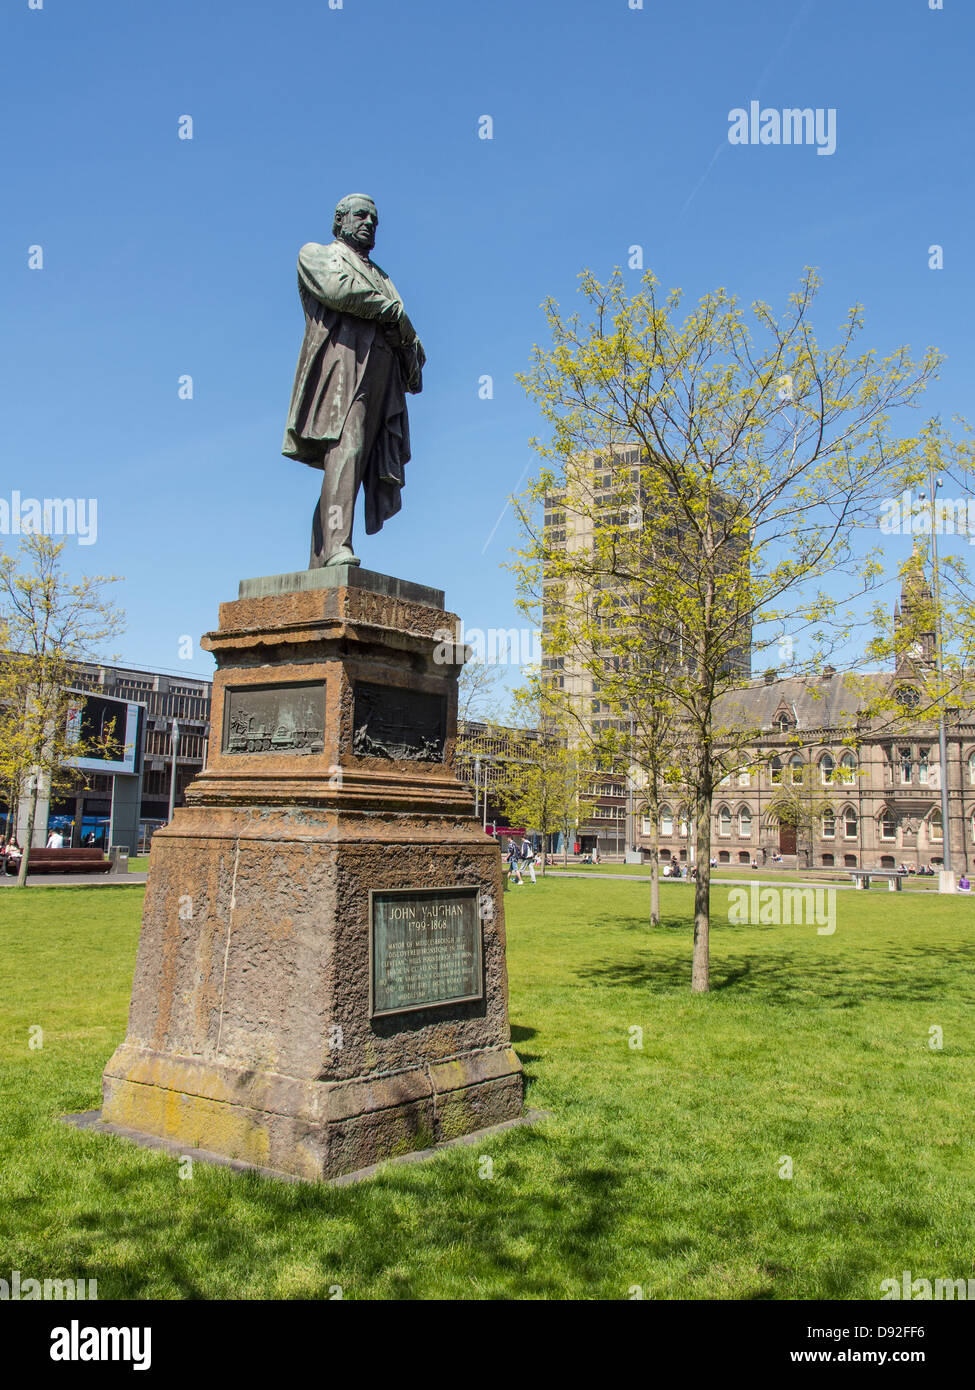 Statue of John Vaughan 1799-1868 in Centre Square Middlesbrough UK. He discovered local ironstone deposits. - Stock Image